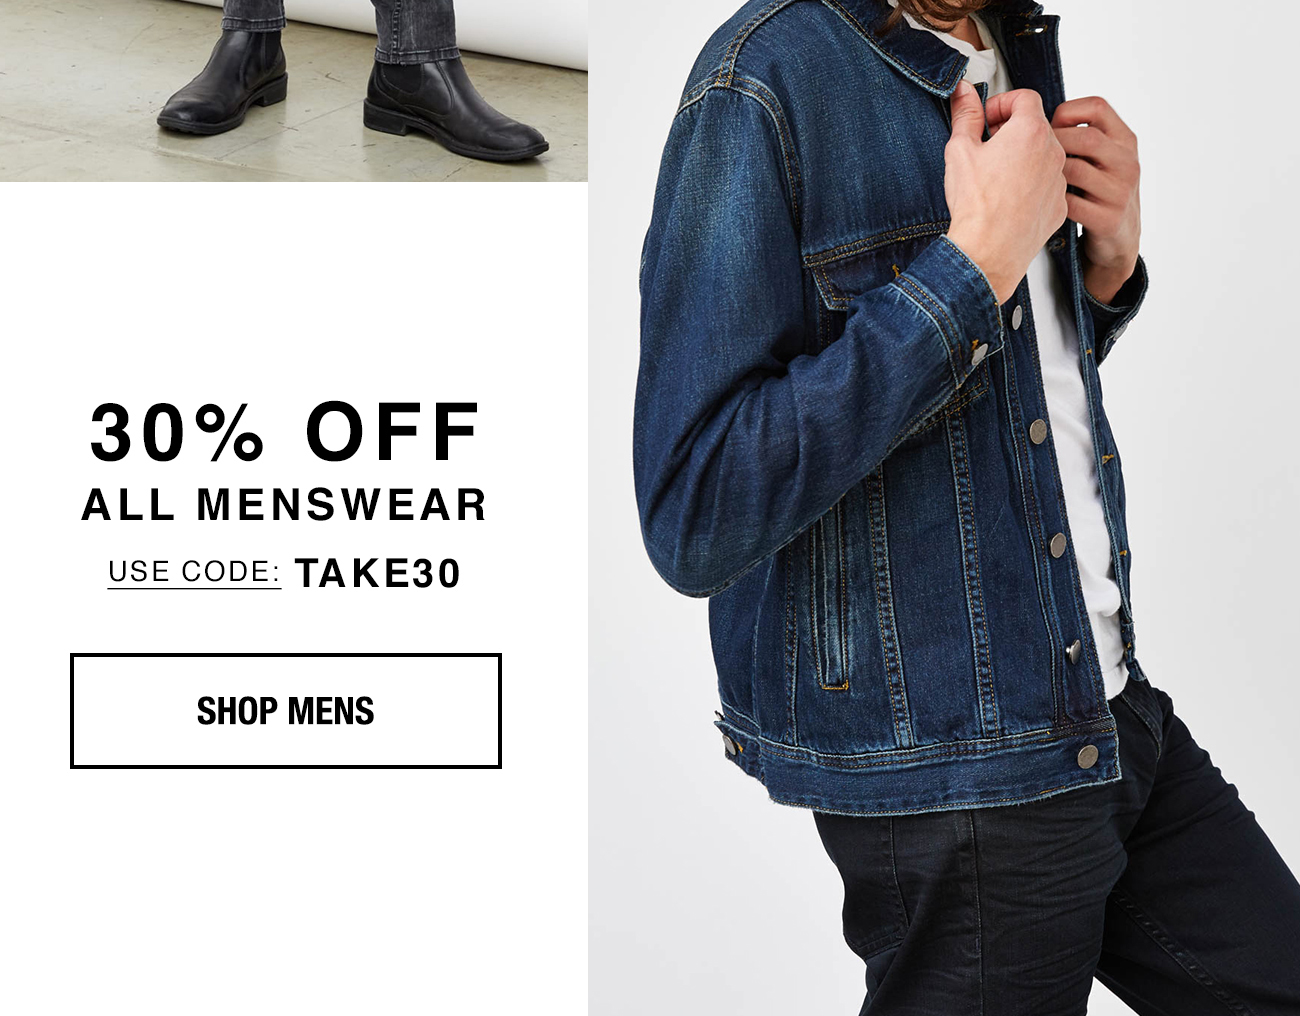 30% All Menswear, Use Code: TAKE30. Shop Mens.